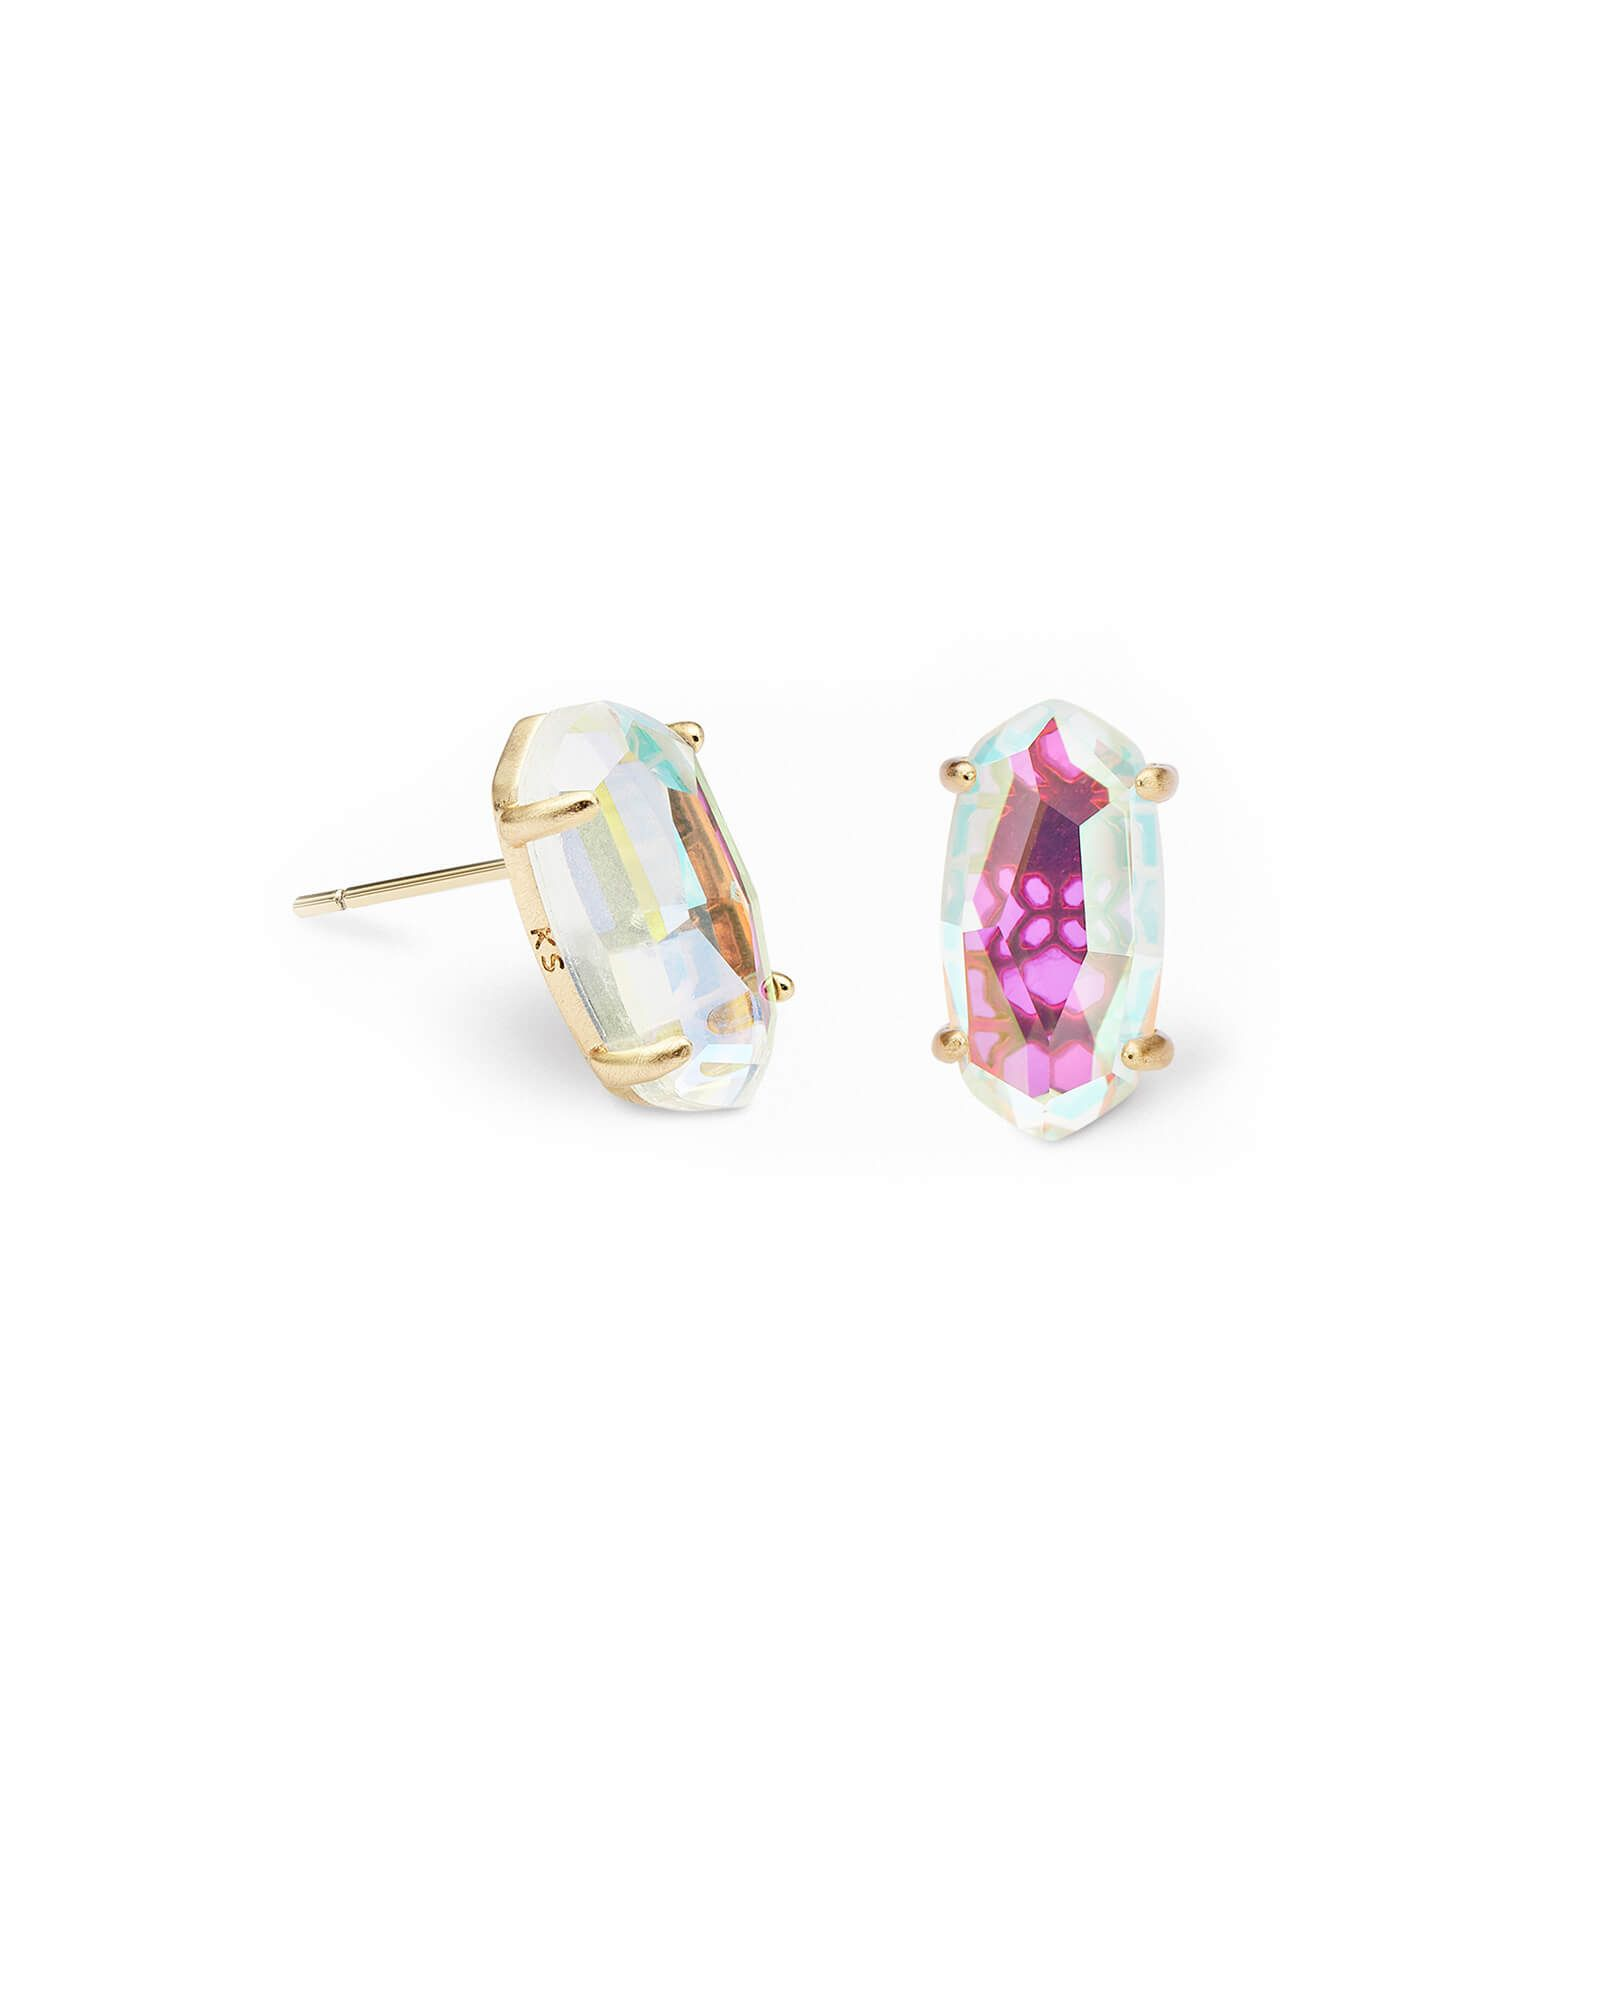 5bde51eade1c1 Get the Betty Gold Stud Earrings for an accessory with a stunning ...